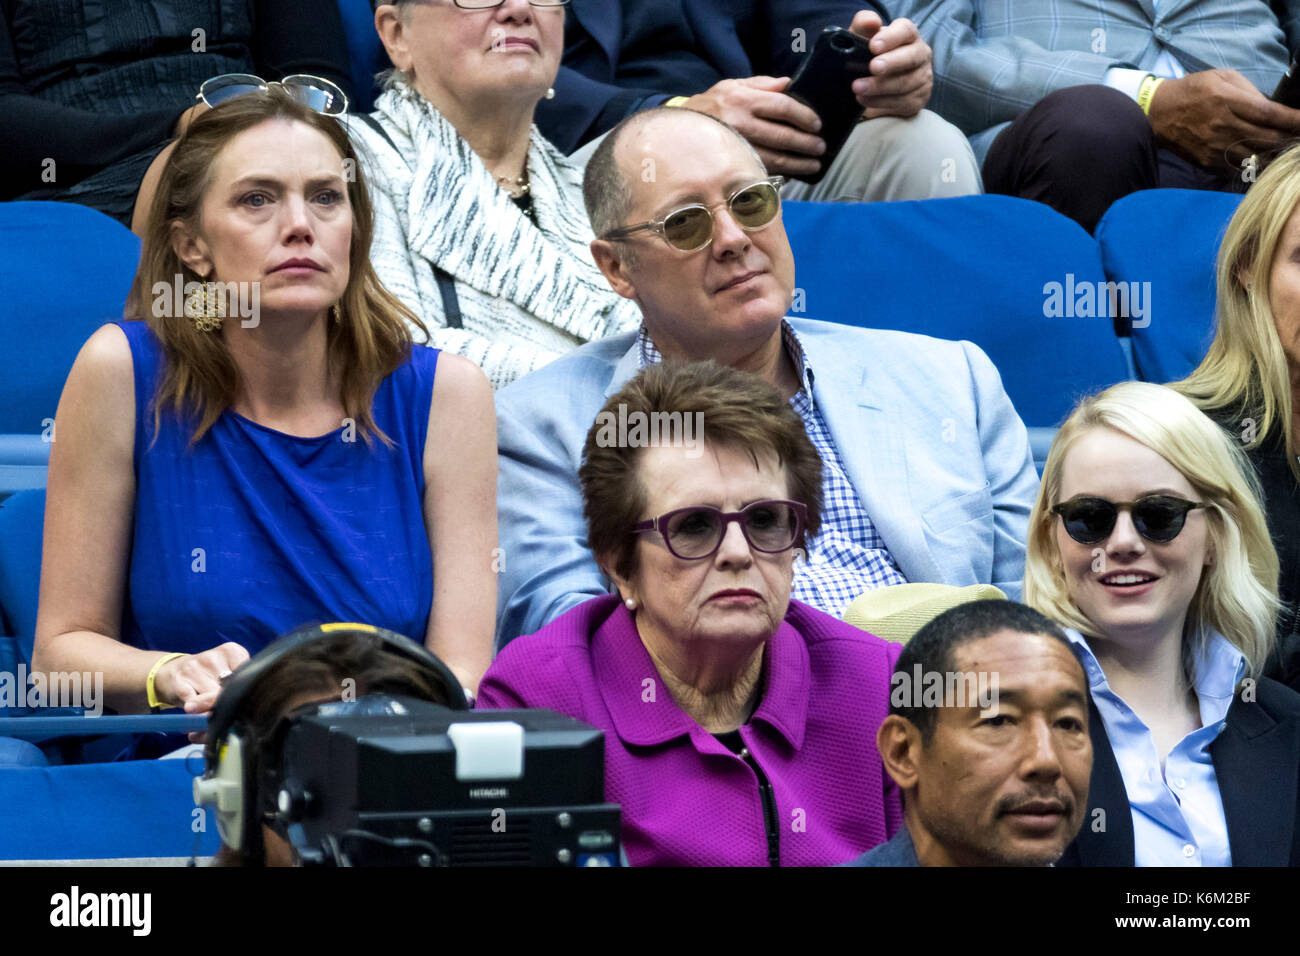 James Spader attend the 2017 US Open Women's Final - Stock Image